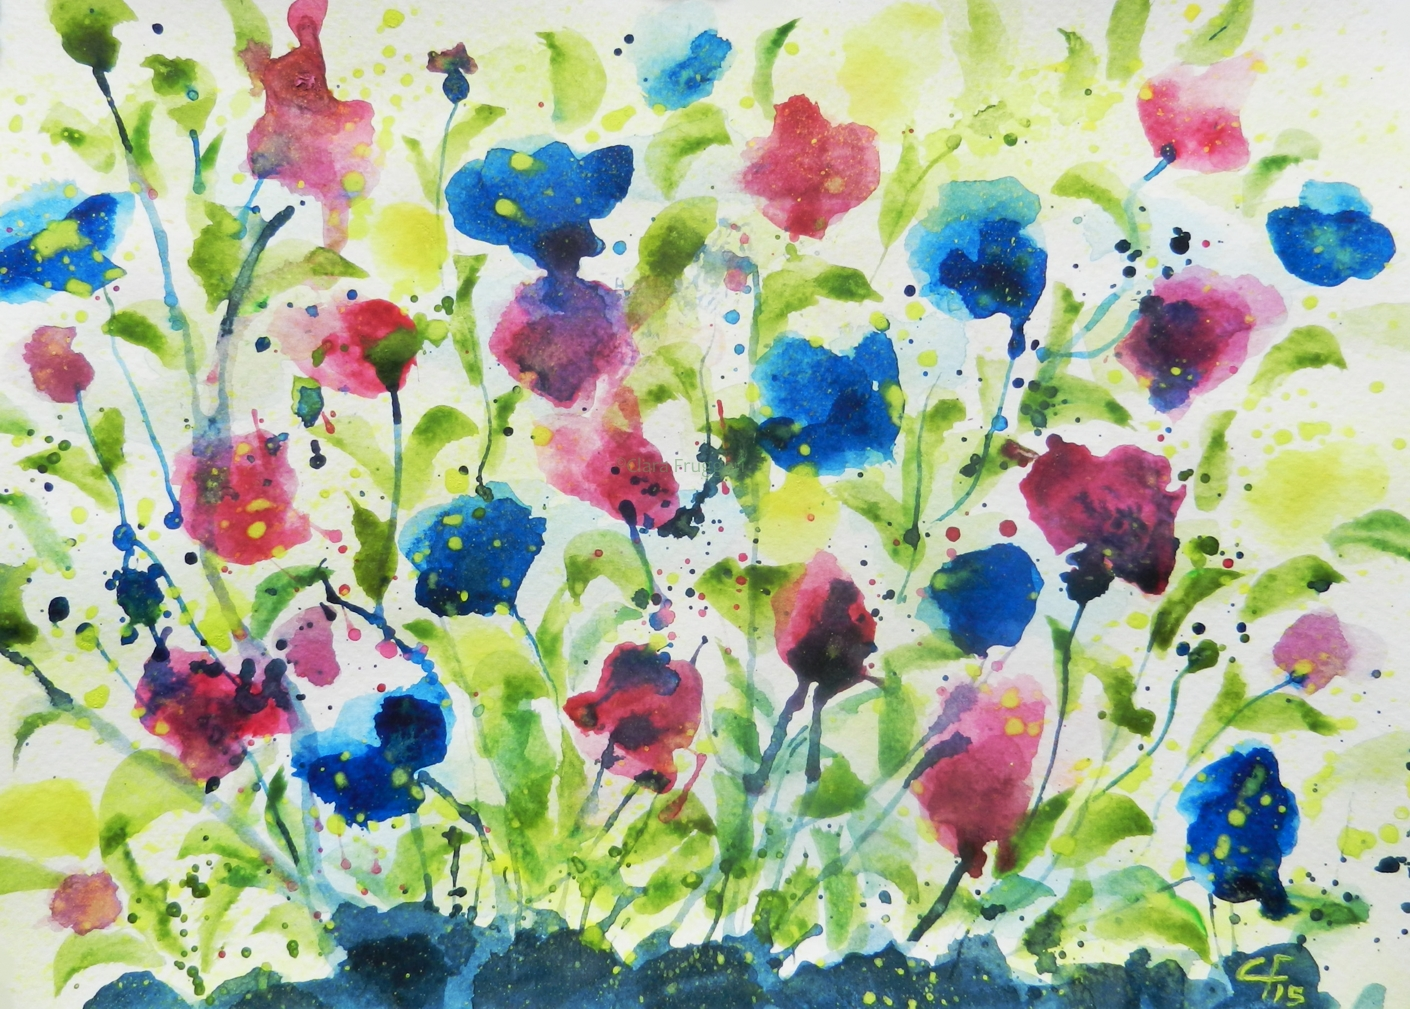 Barrier flowers, Barriera a fiori, Watercolor, Painting, Nature, Flowers, Garden, Clara Fruggeri